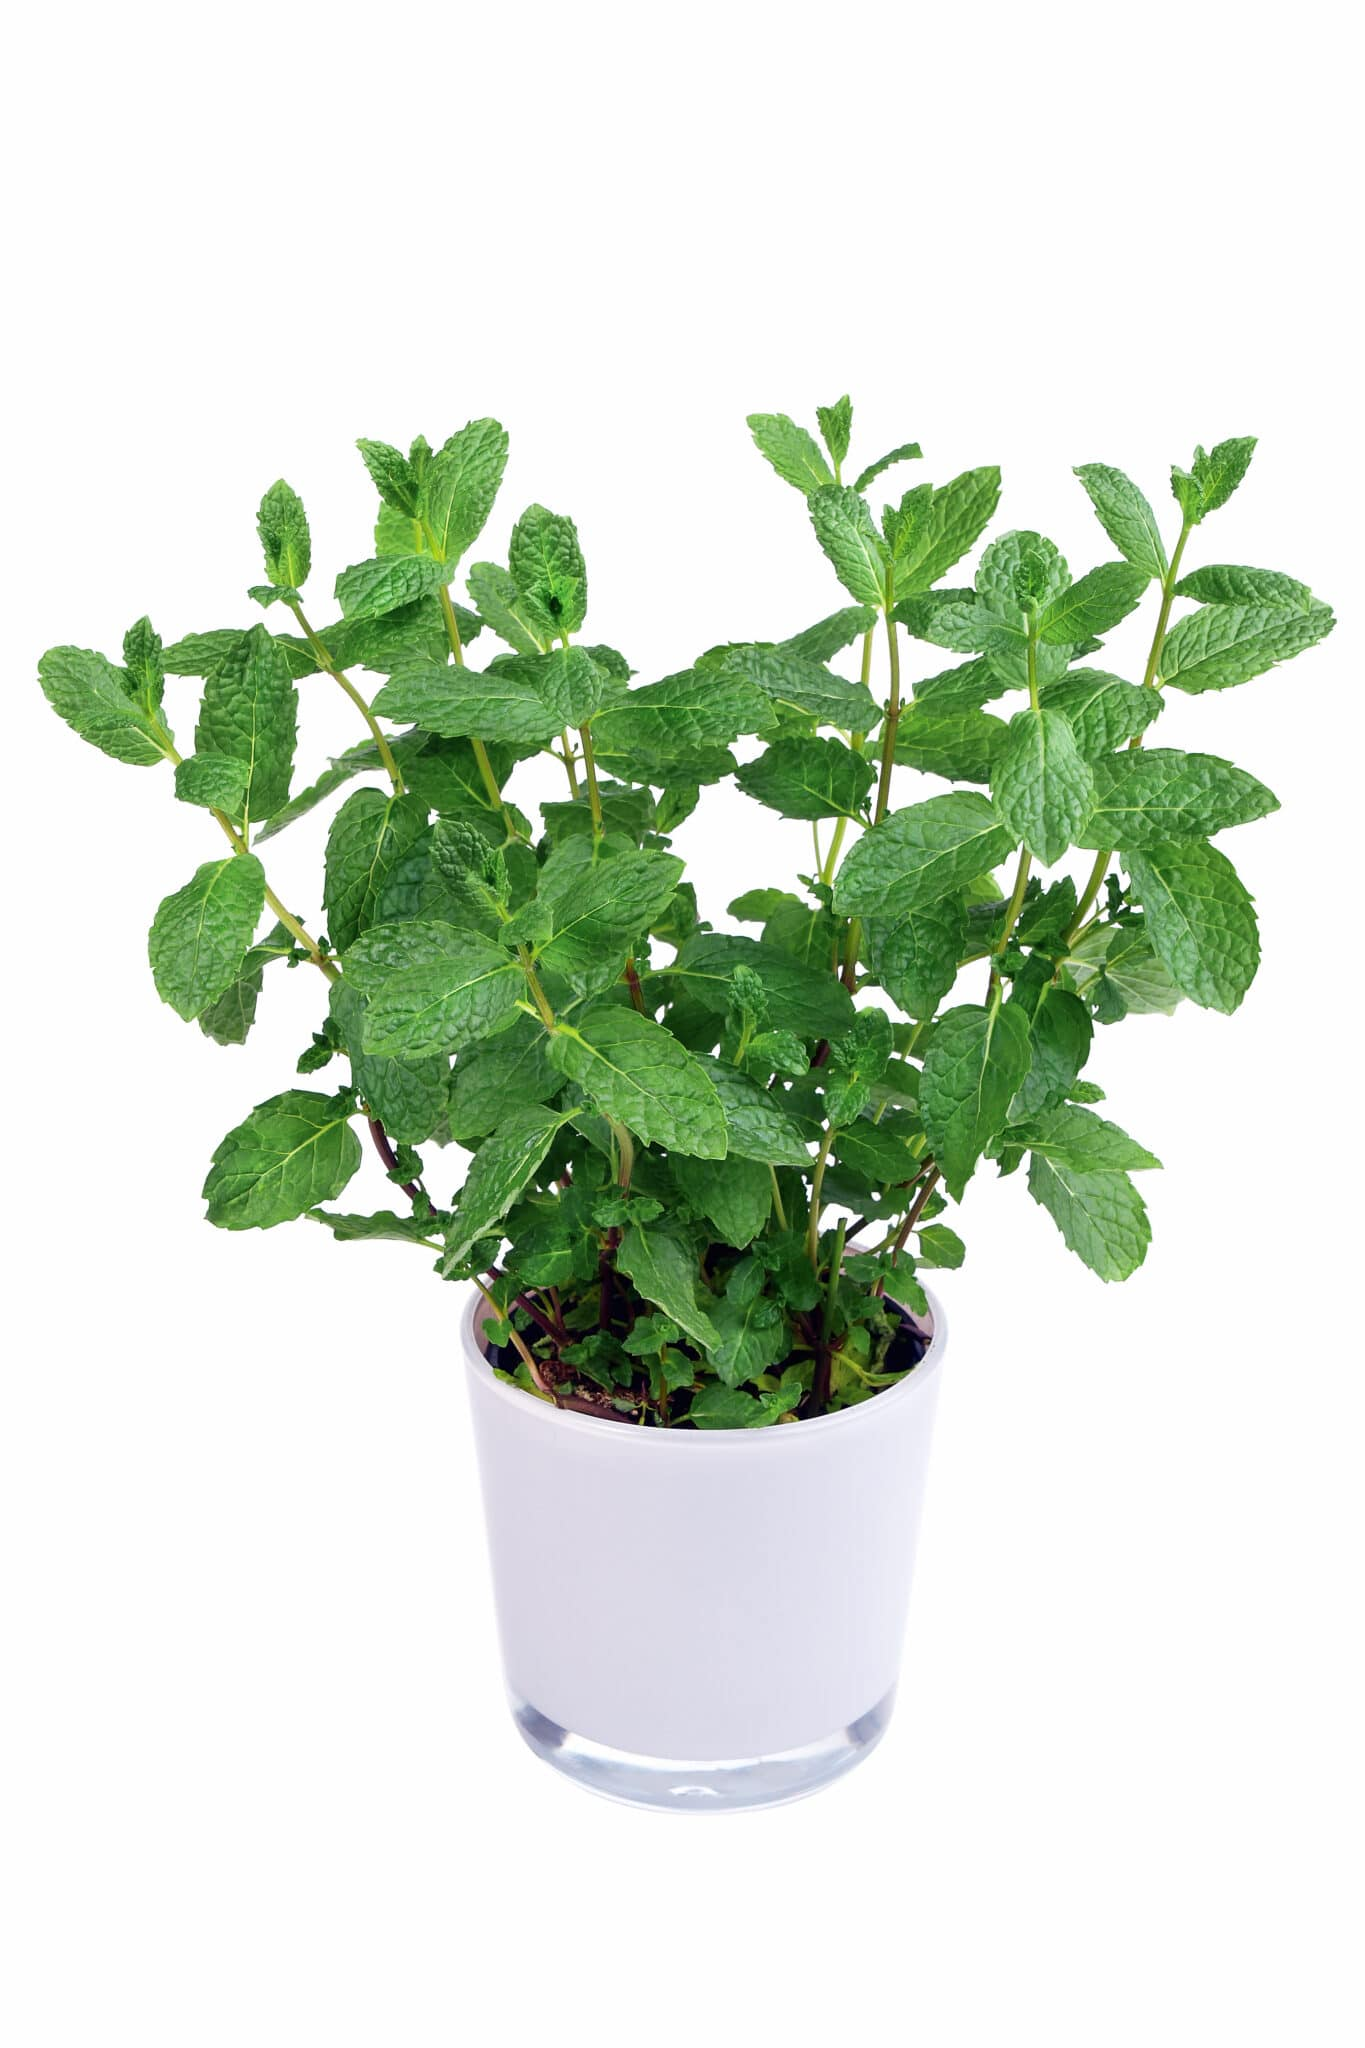 A healthy dark green mint plant growing in a white glass pot.